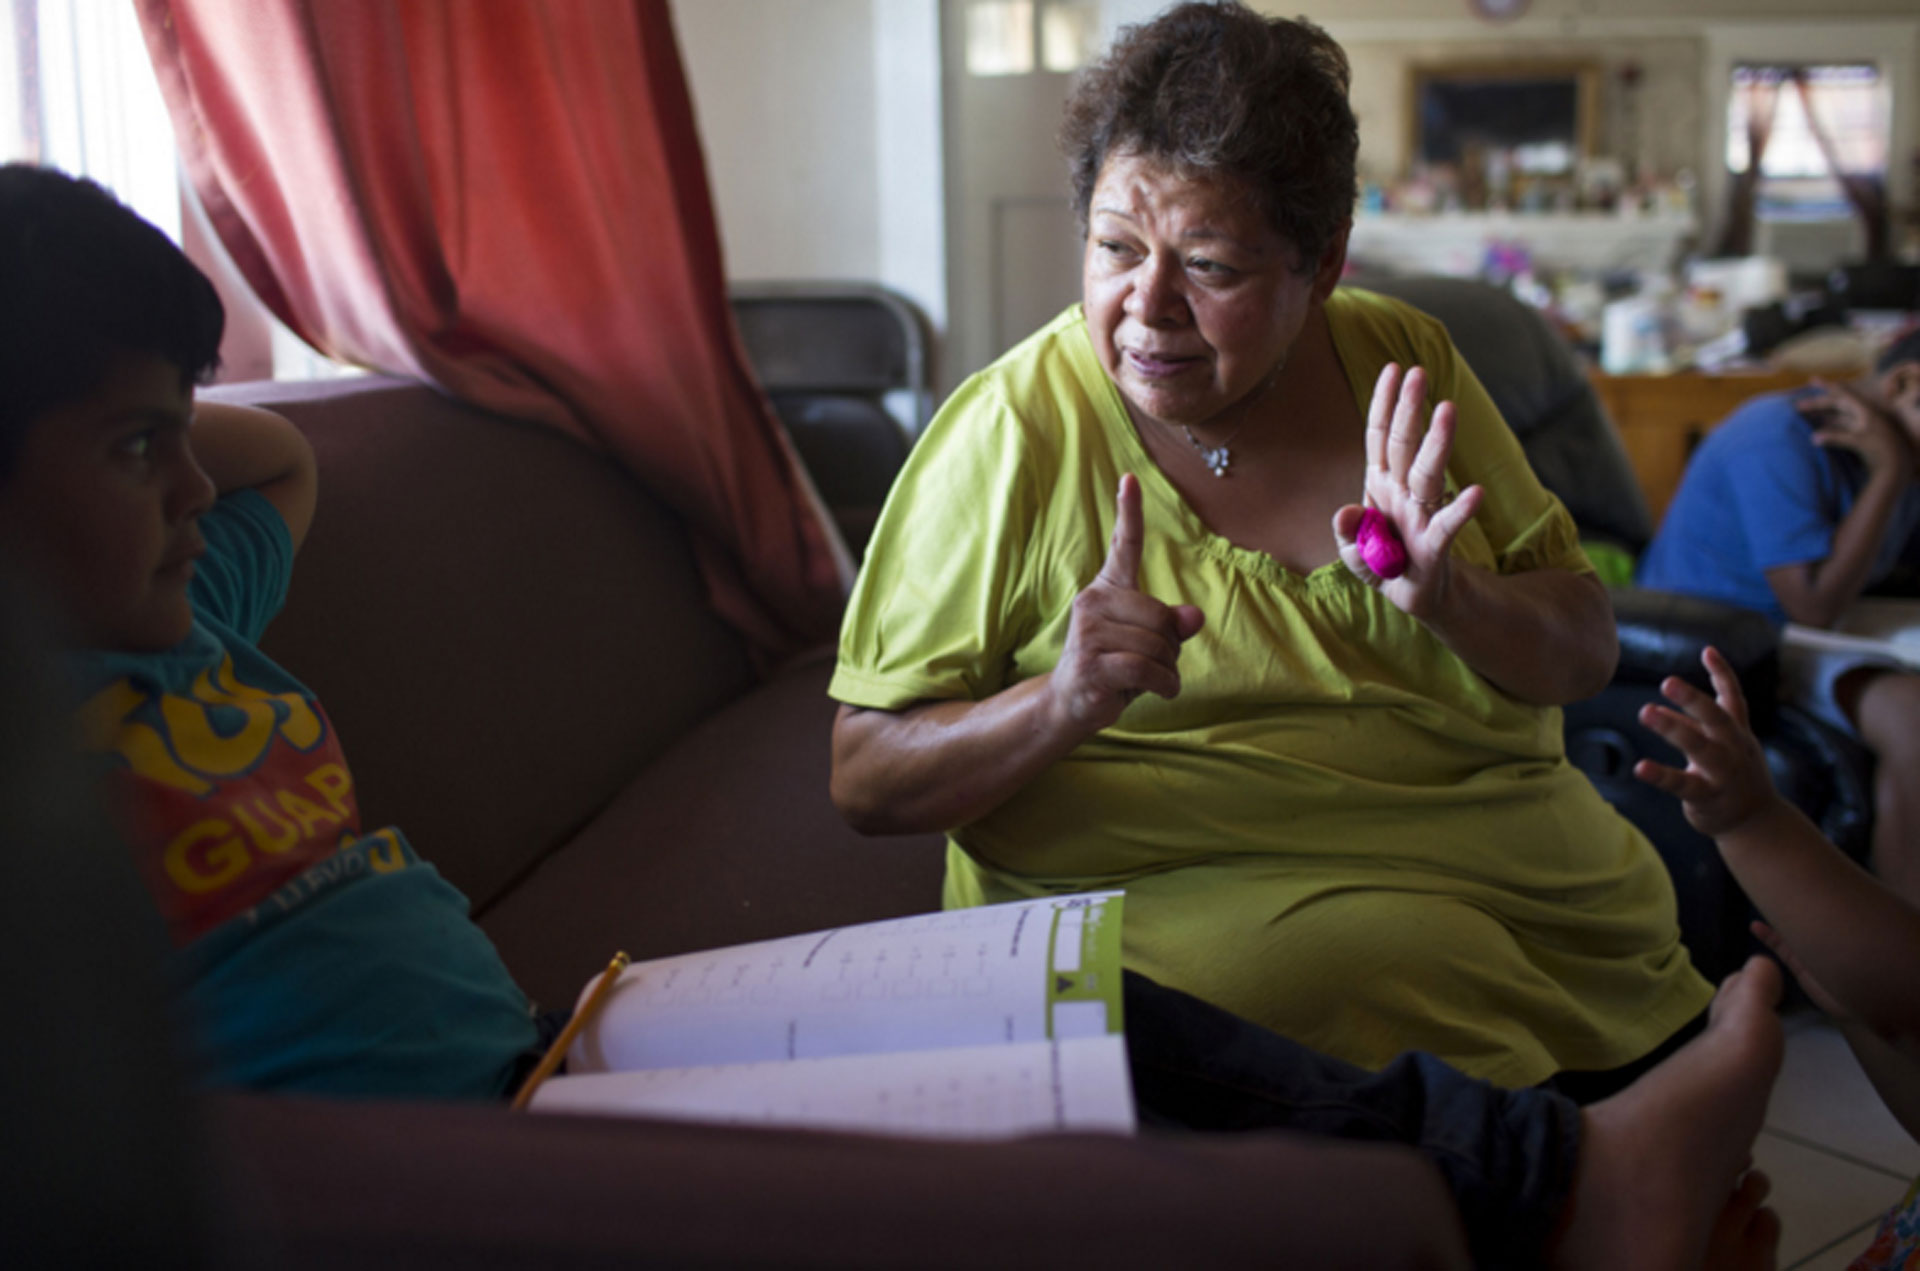 Maria Garcia, 58, works with her grandson, Pablo Andres Garcia, 6, on a math exercise in their South Los Angeles home.